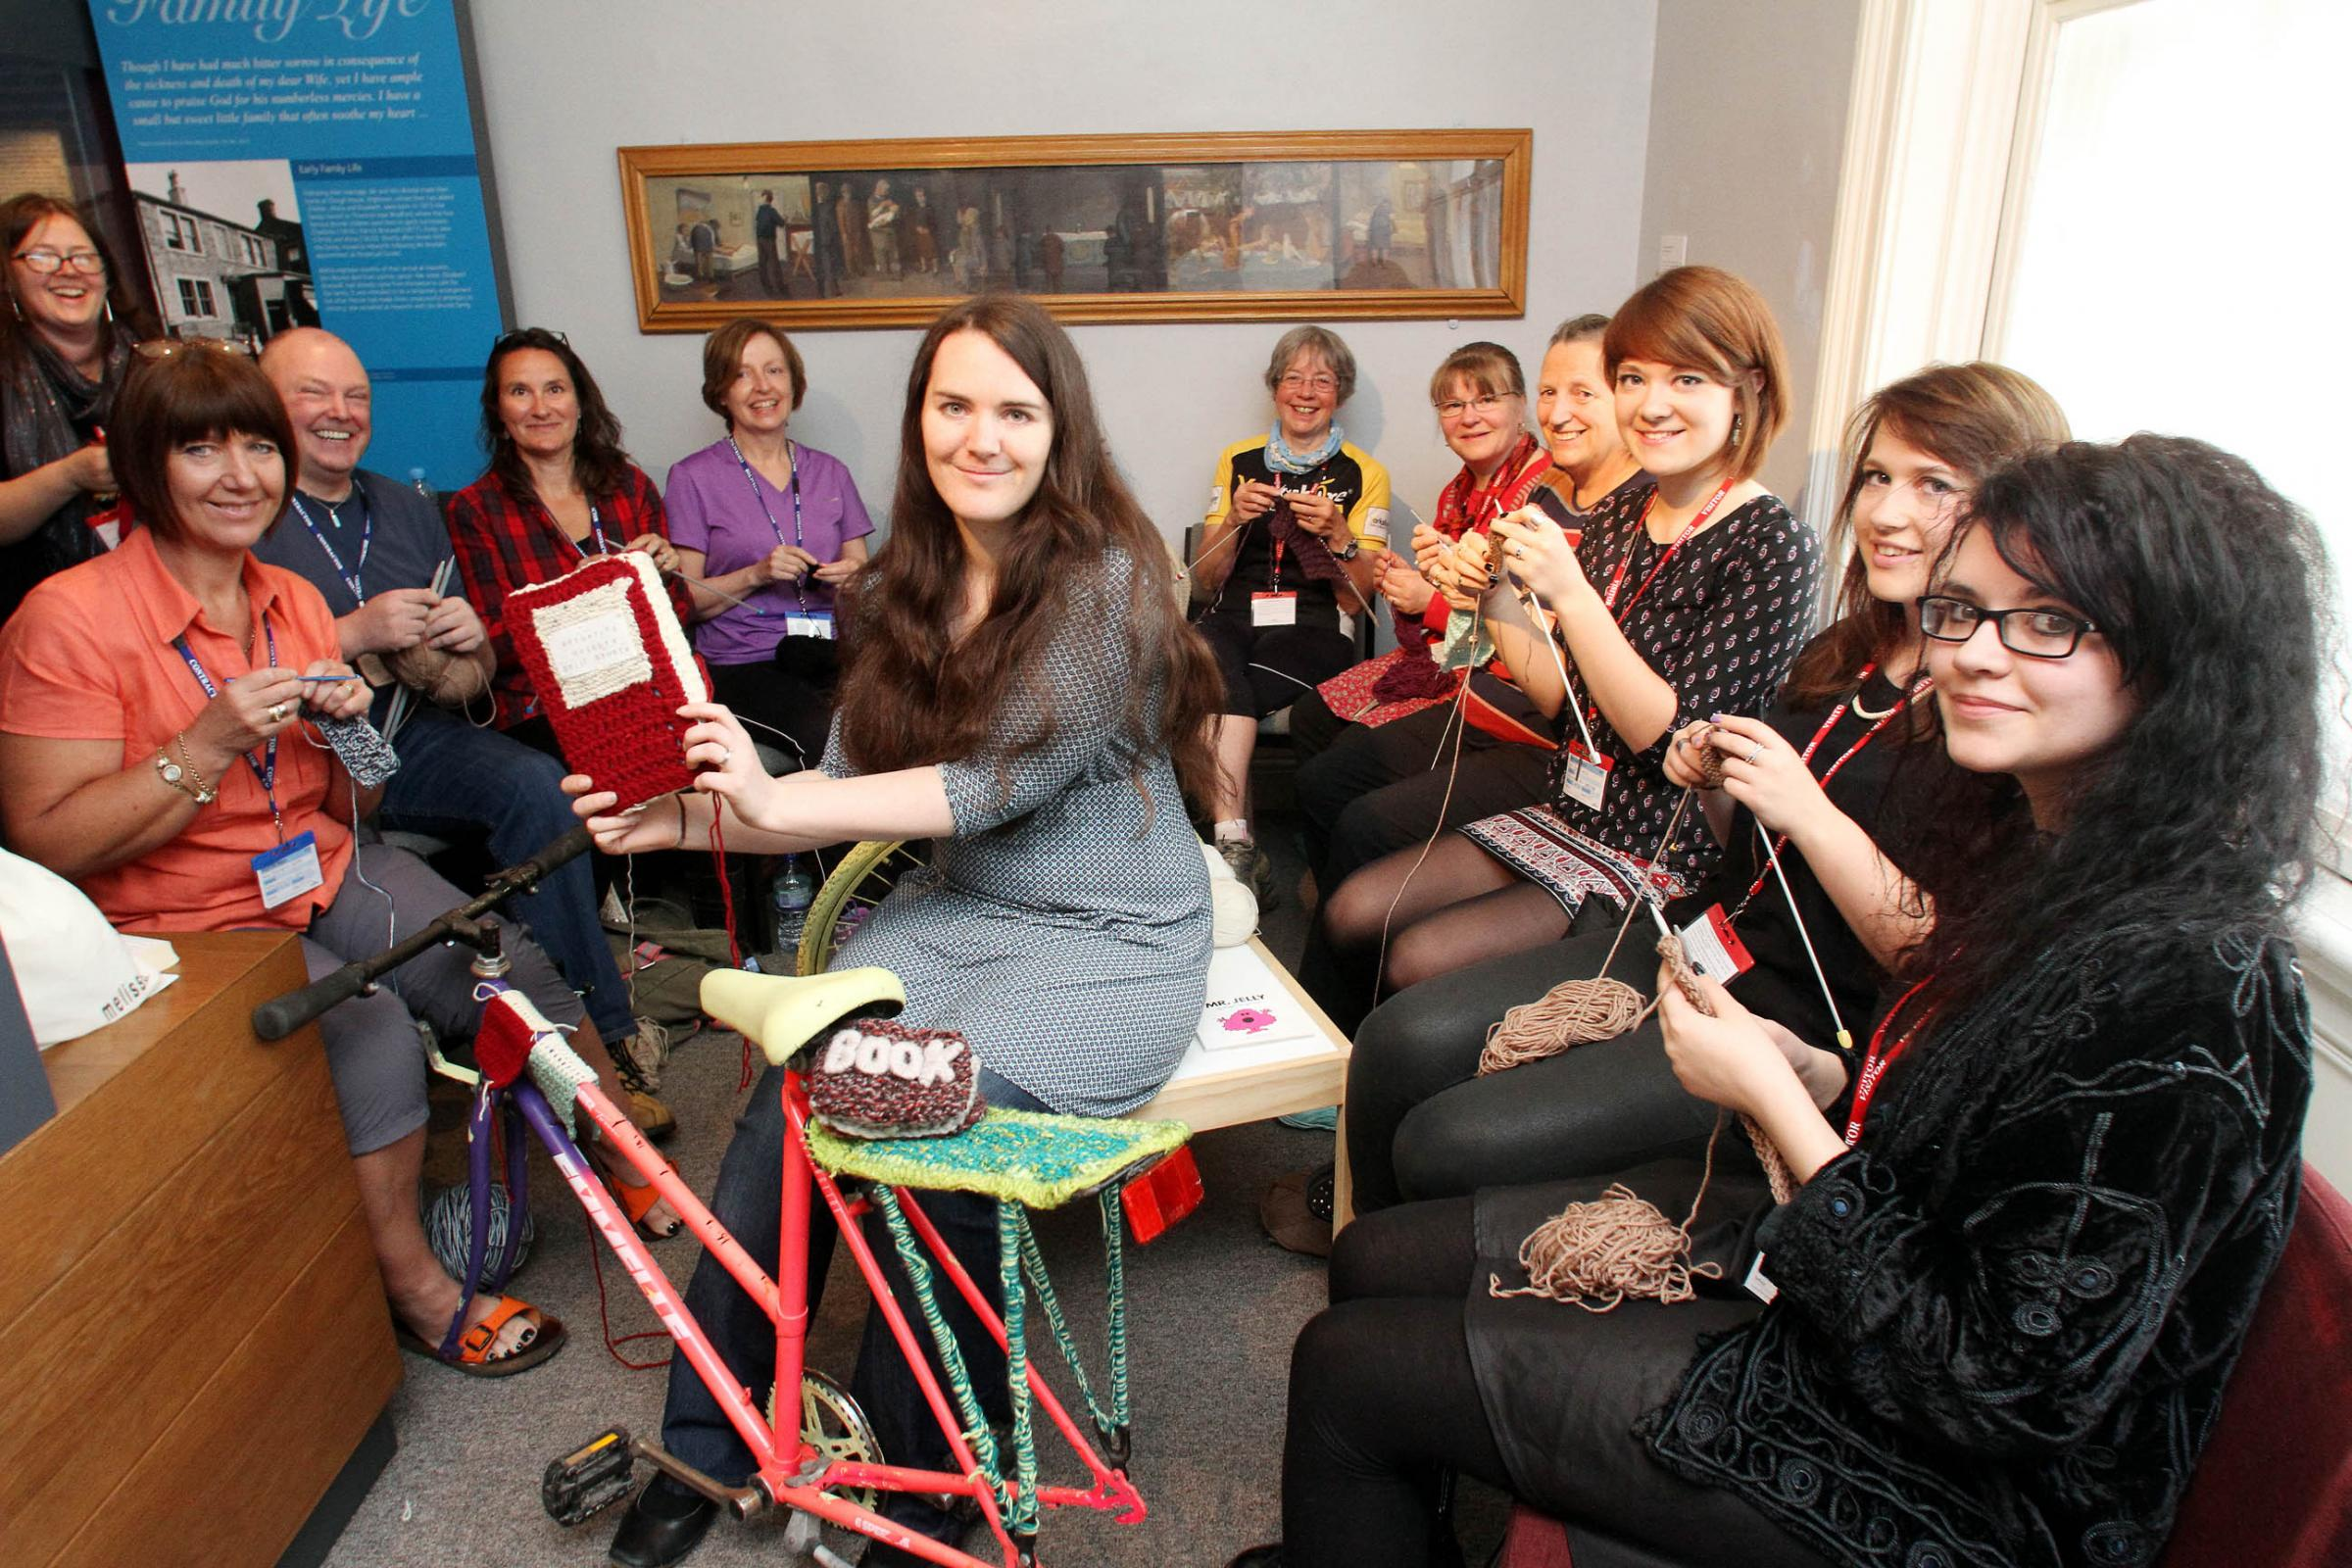 Cassandra Kilbride, centre, is joined by knitters in the woolly bike works